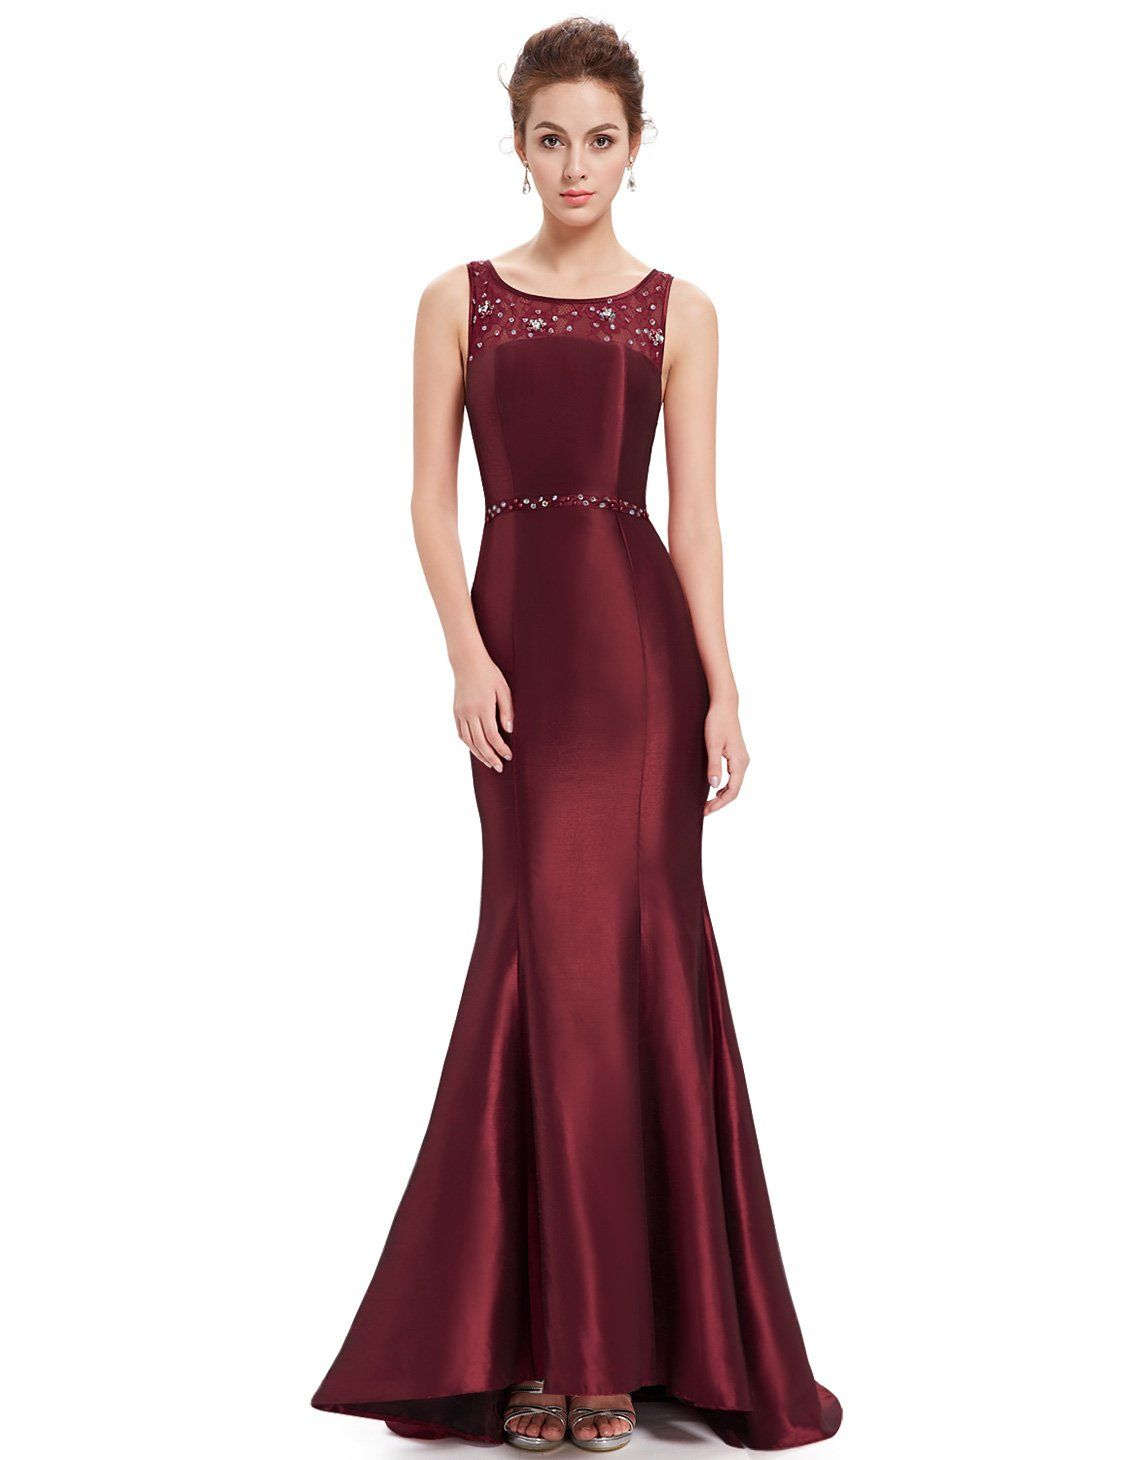 f6e2cece35 Ever Pretty Women s Stunning Trailing Round Neck Fishtail Evening Dress  08511  Amazon.co.uk  Clothing